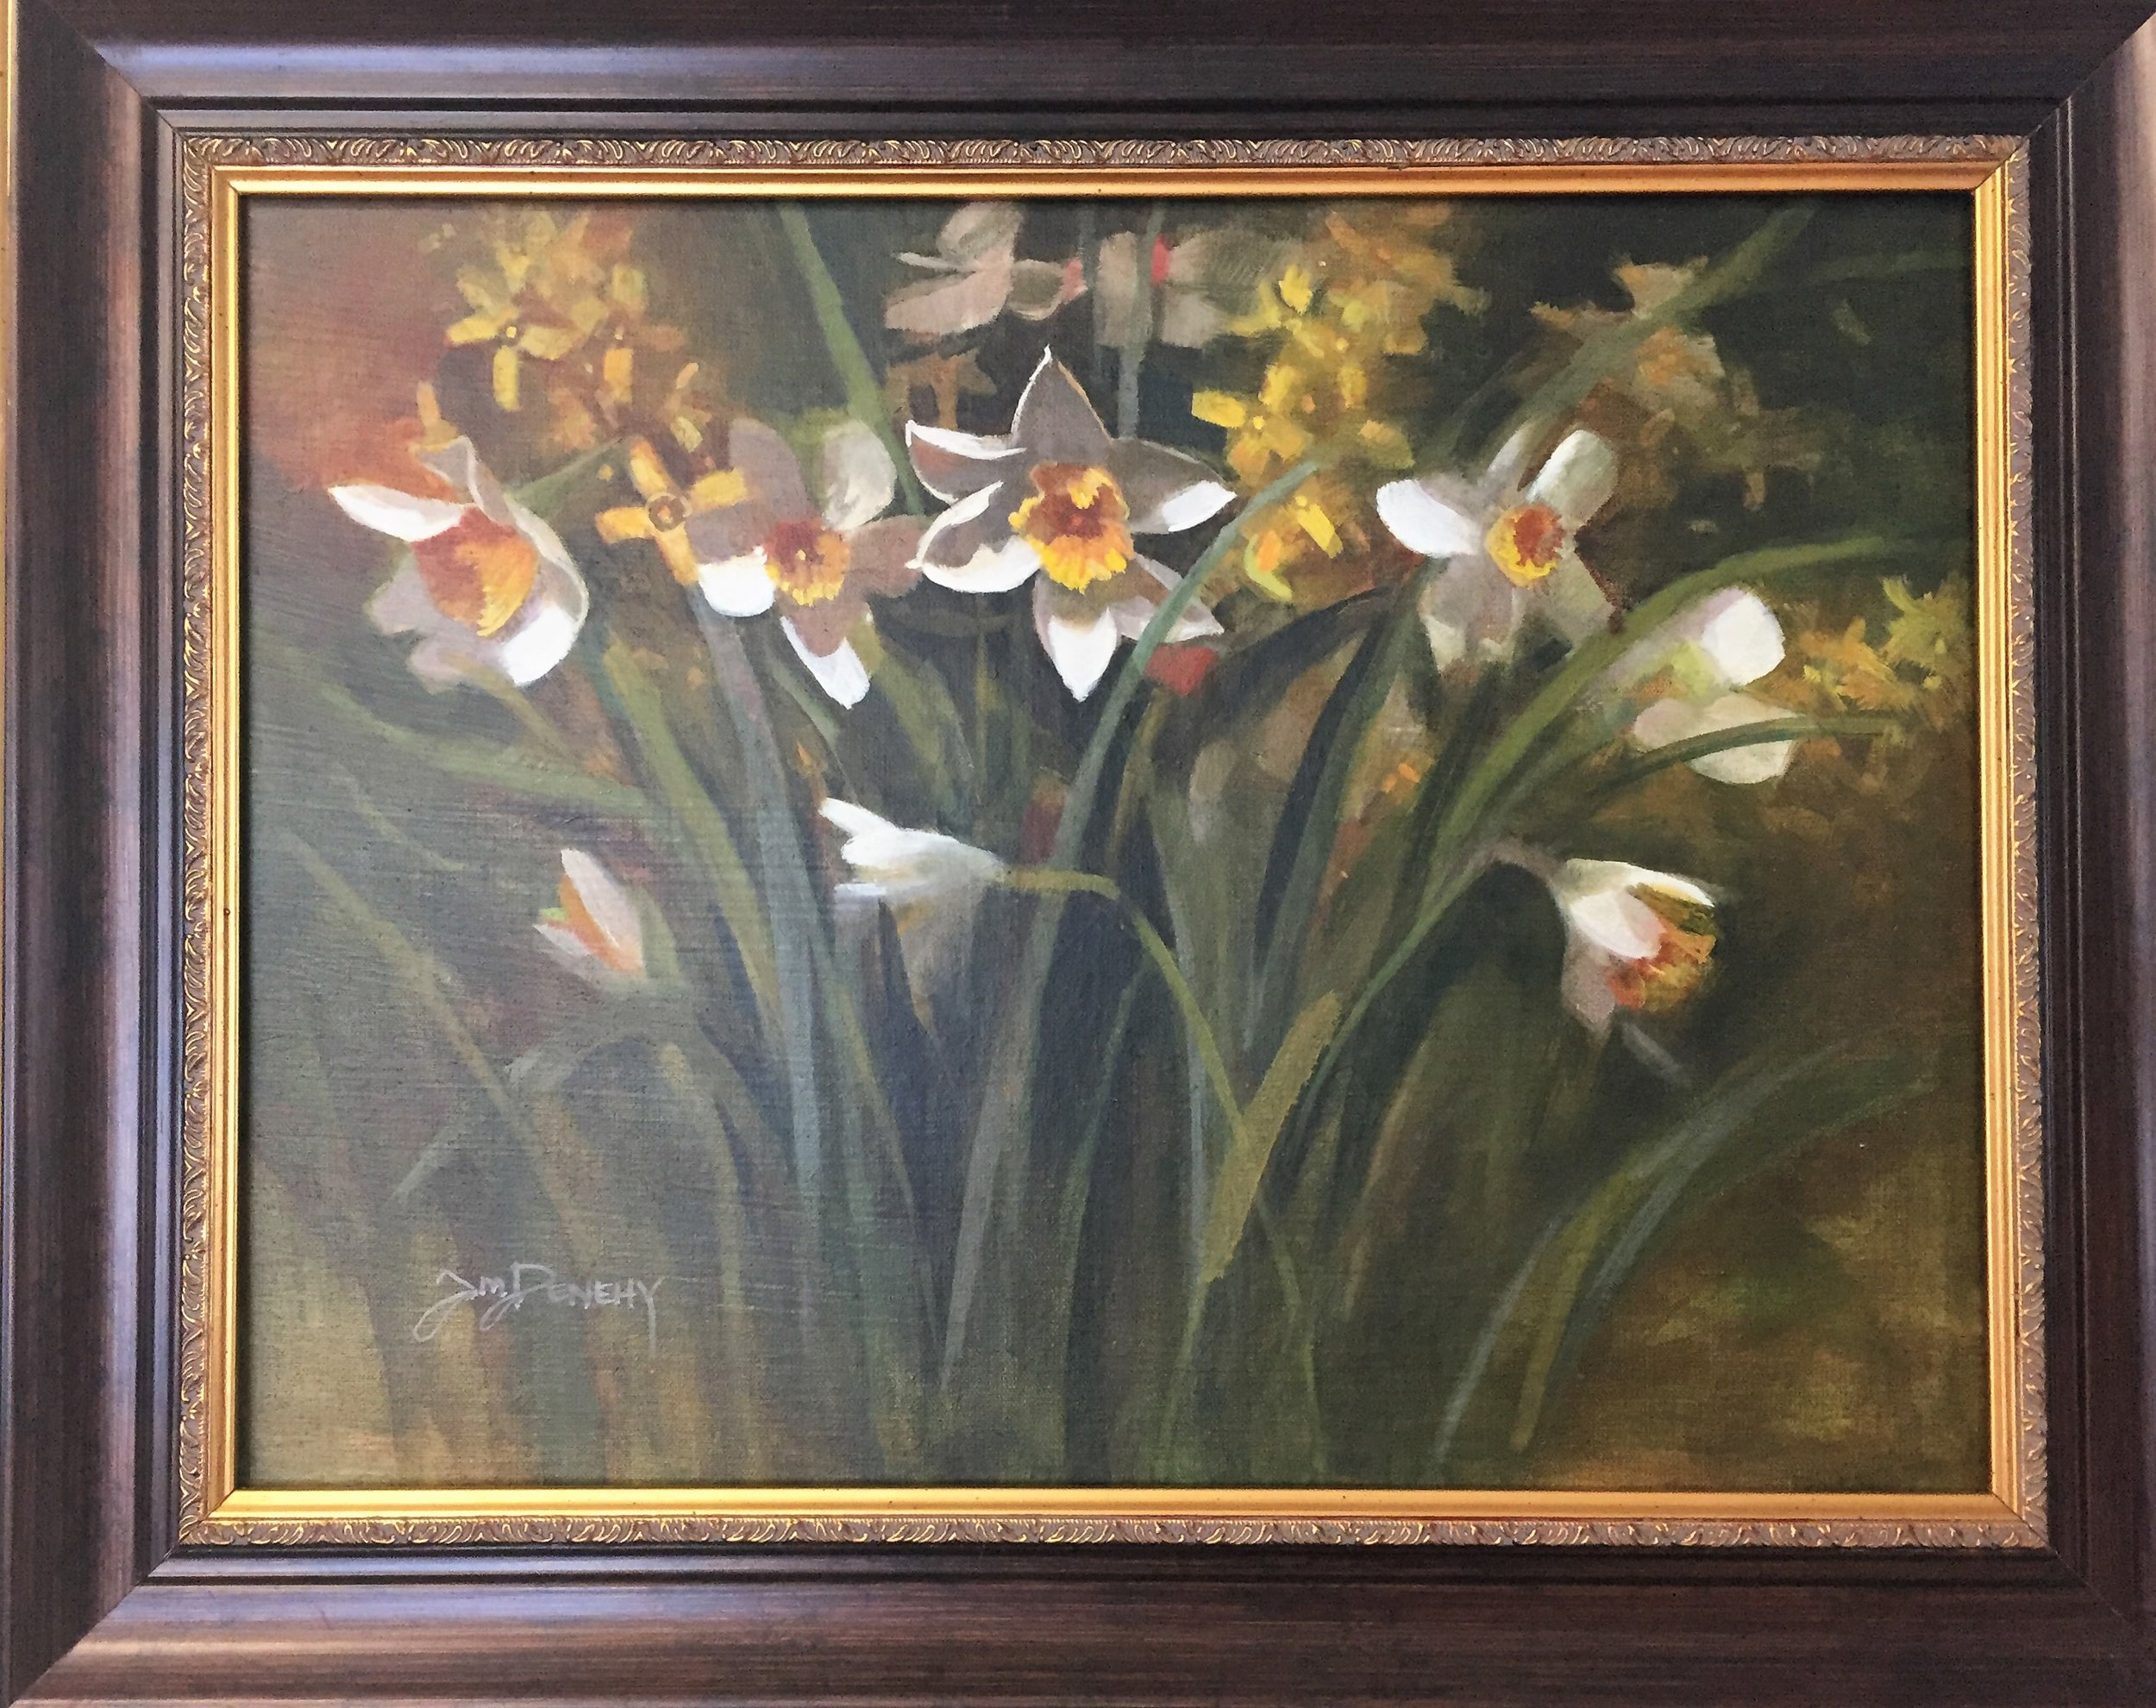 By Jo-Ann Denehy at The Daylily in South Deerfield